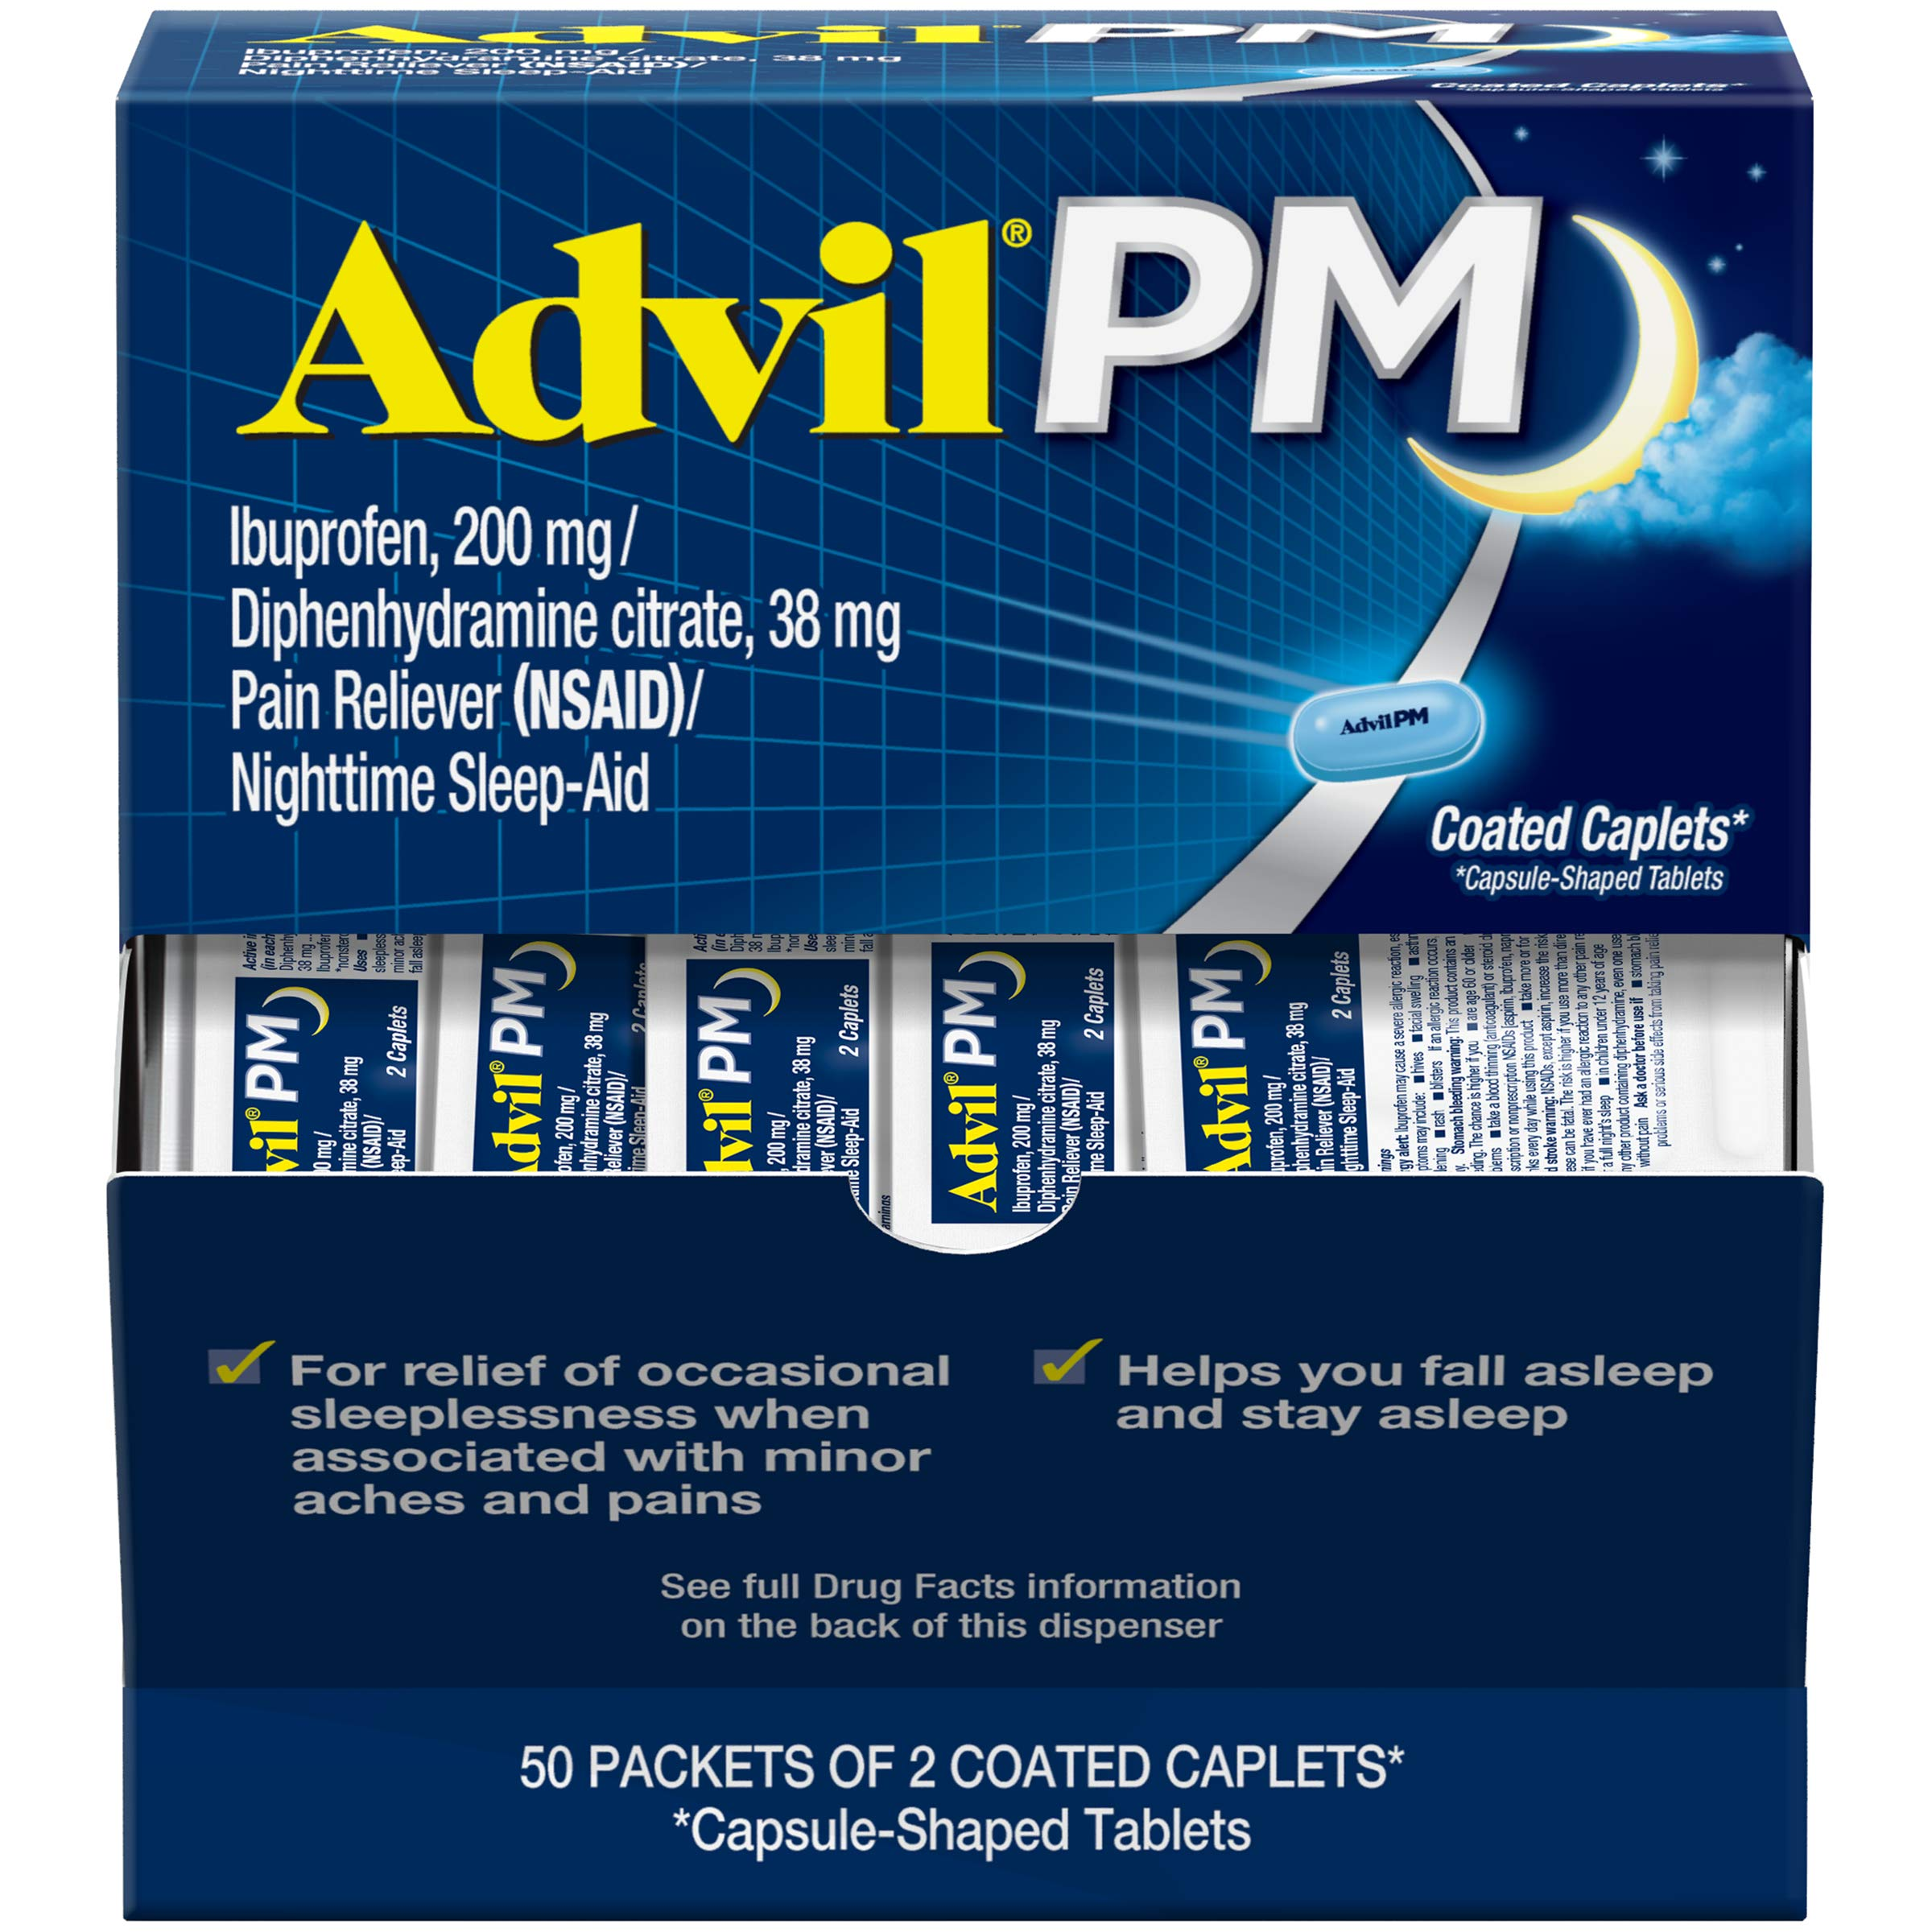 Advil PM (50 x 2 Packets - 100 Count) Pain Reliever / Nighttime Sleep Aid Coated Caplet, 200mg Ibuprofen, 38mg Diphenhydramine